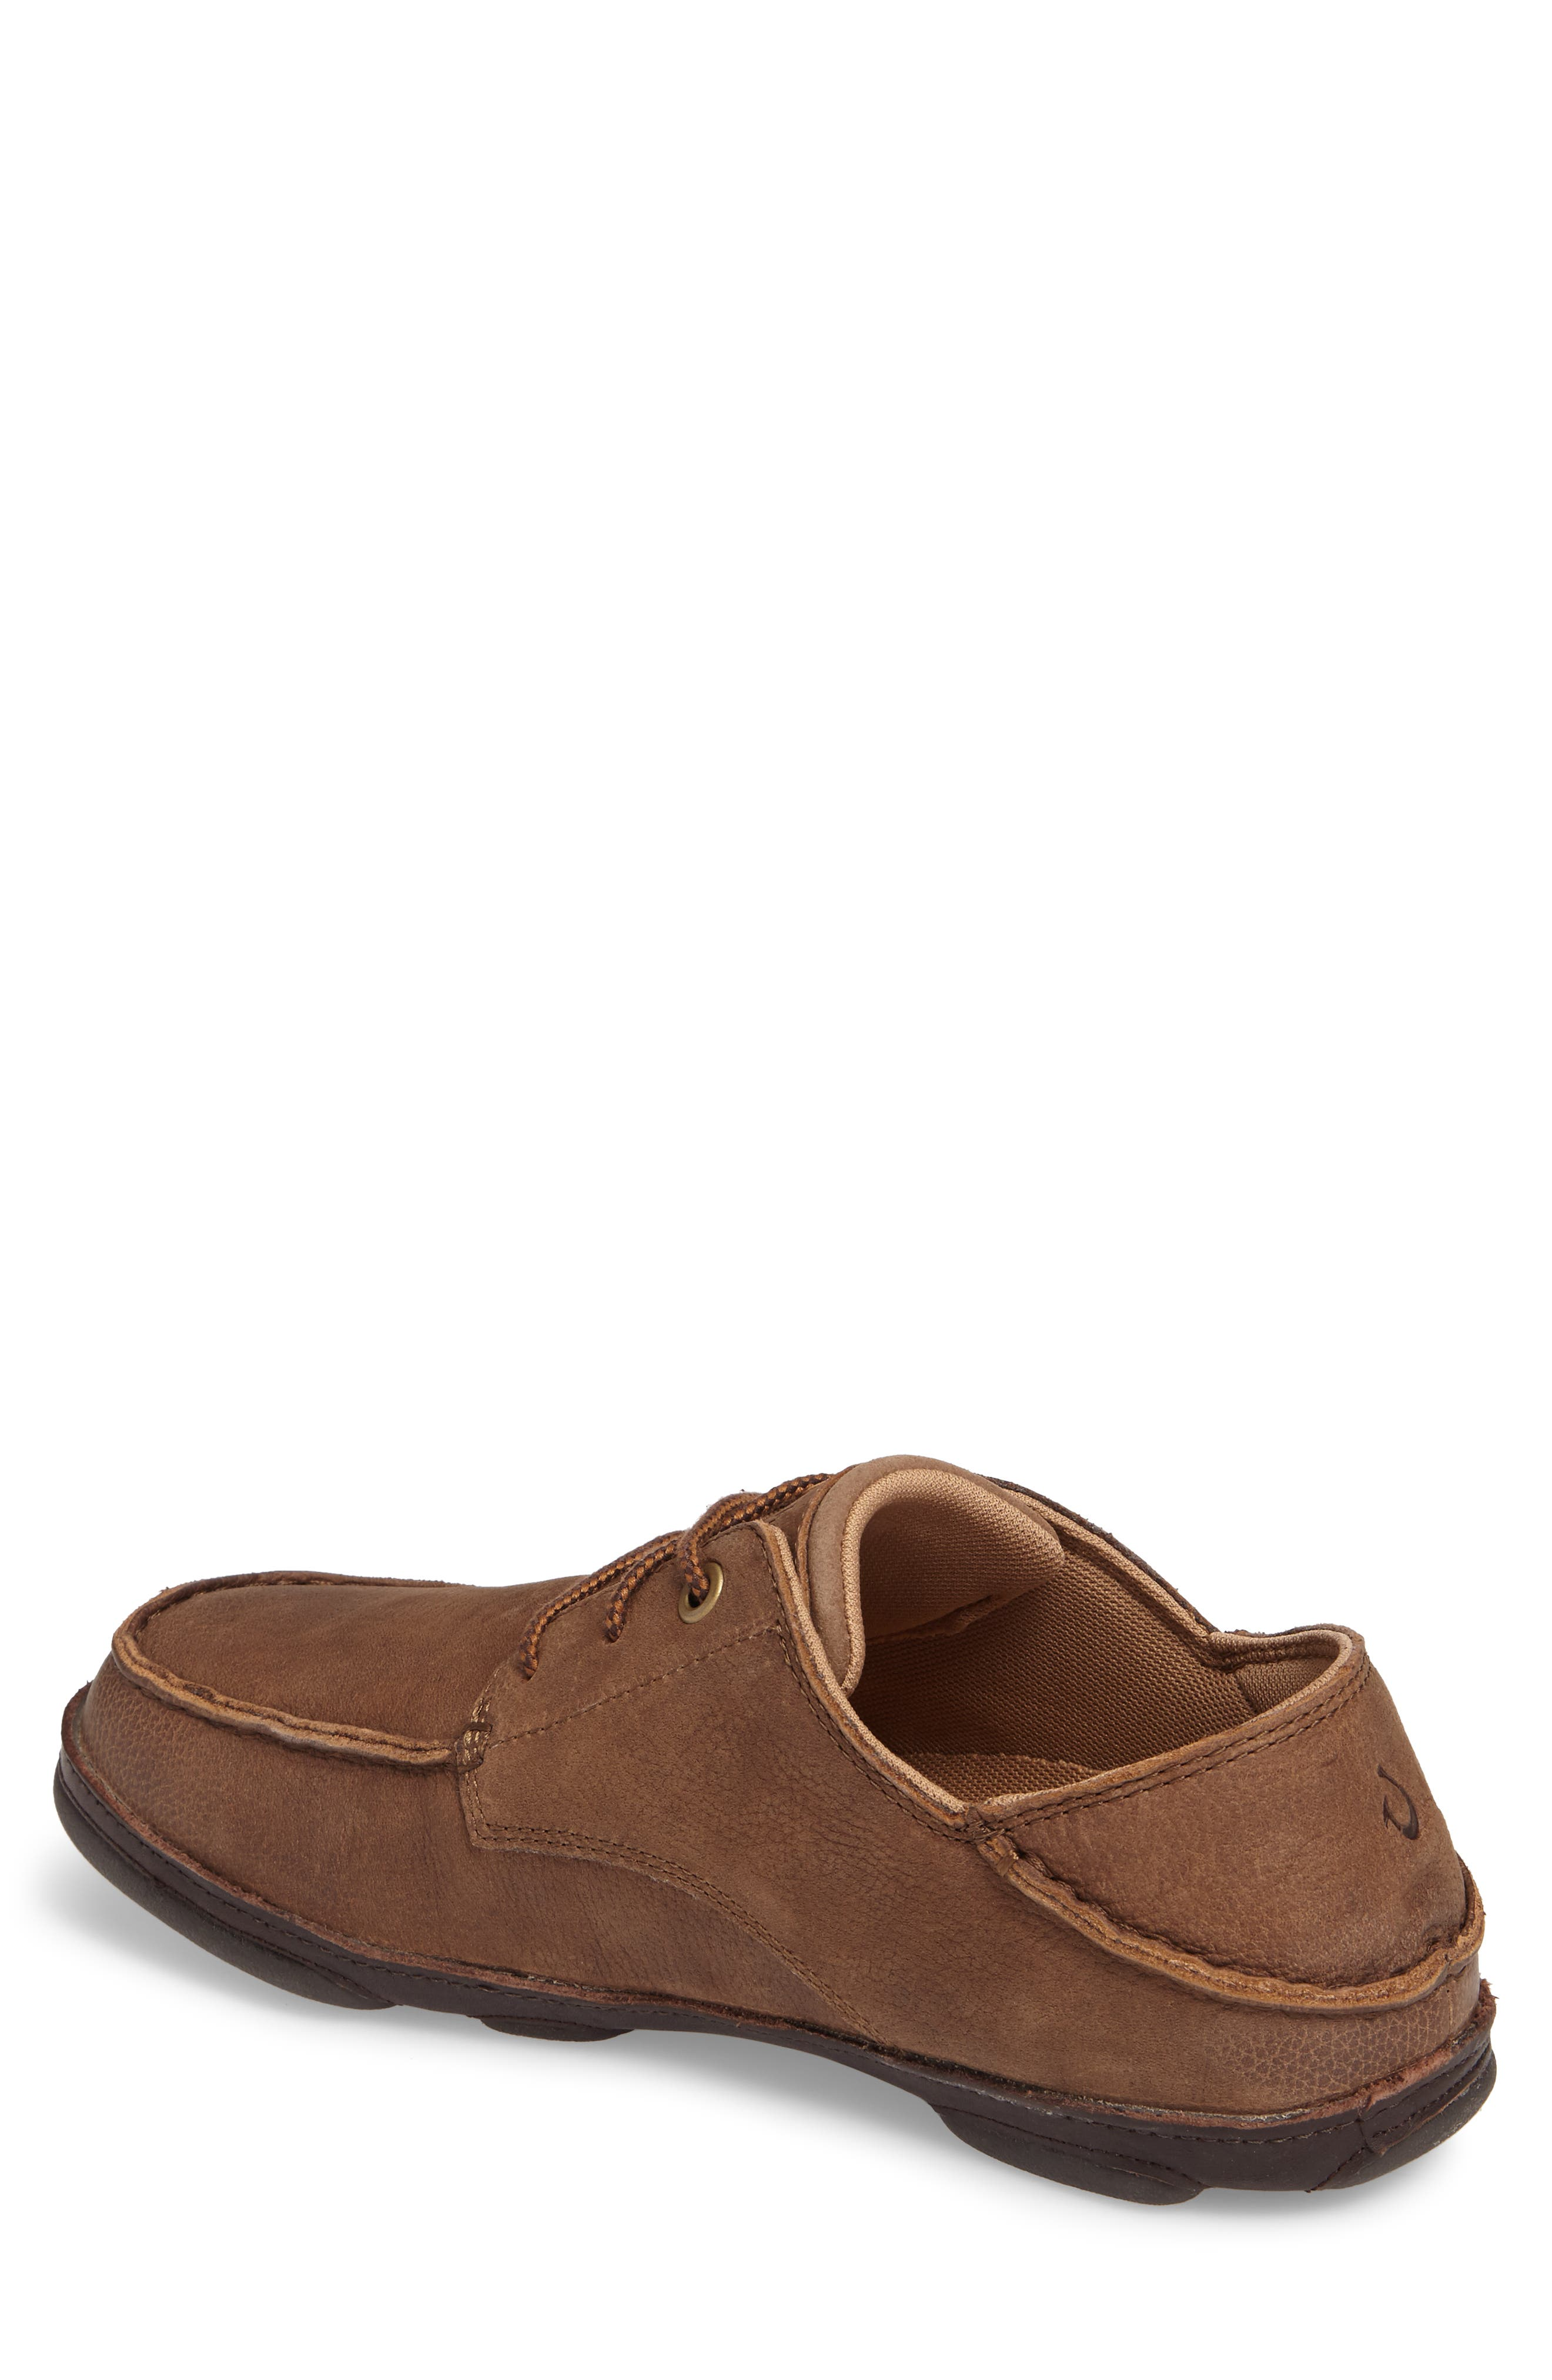 Hamakua Poko Moc Toe Derby,                             Alternate thumbnail 2, color,                             Ray/ Dark Wood Leather